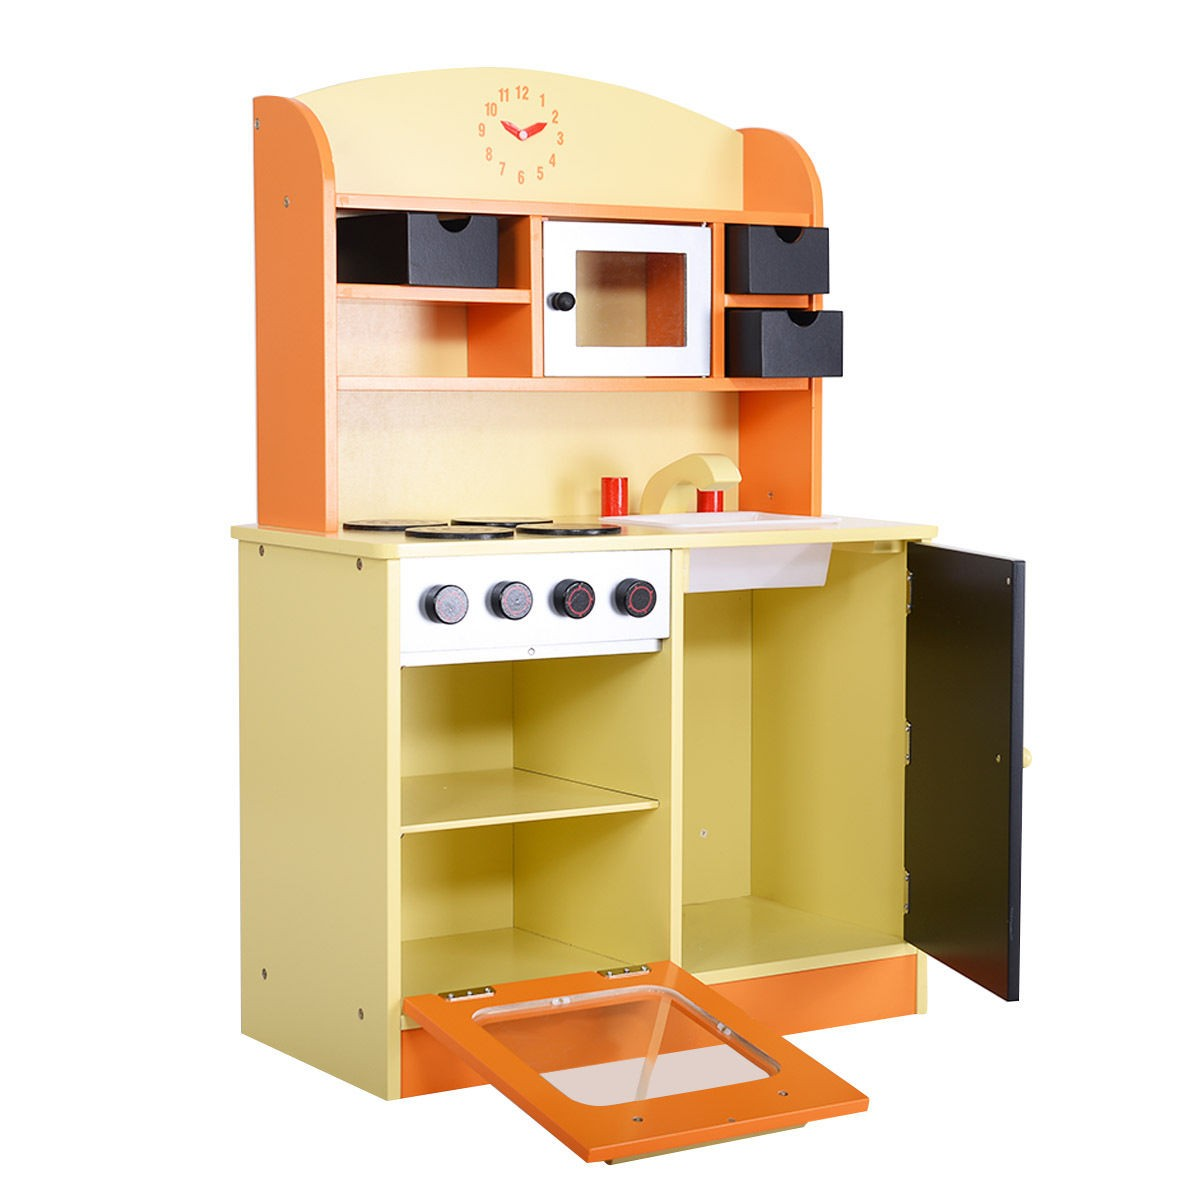 Wooden Kitchen Playset Malaysia Googdrive Com